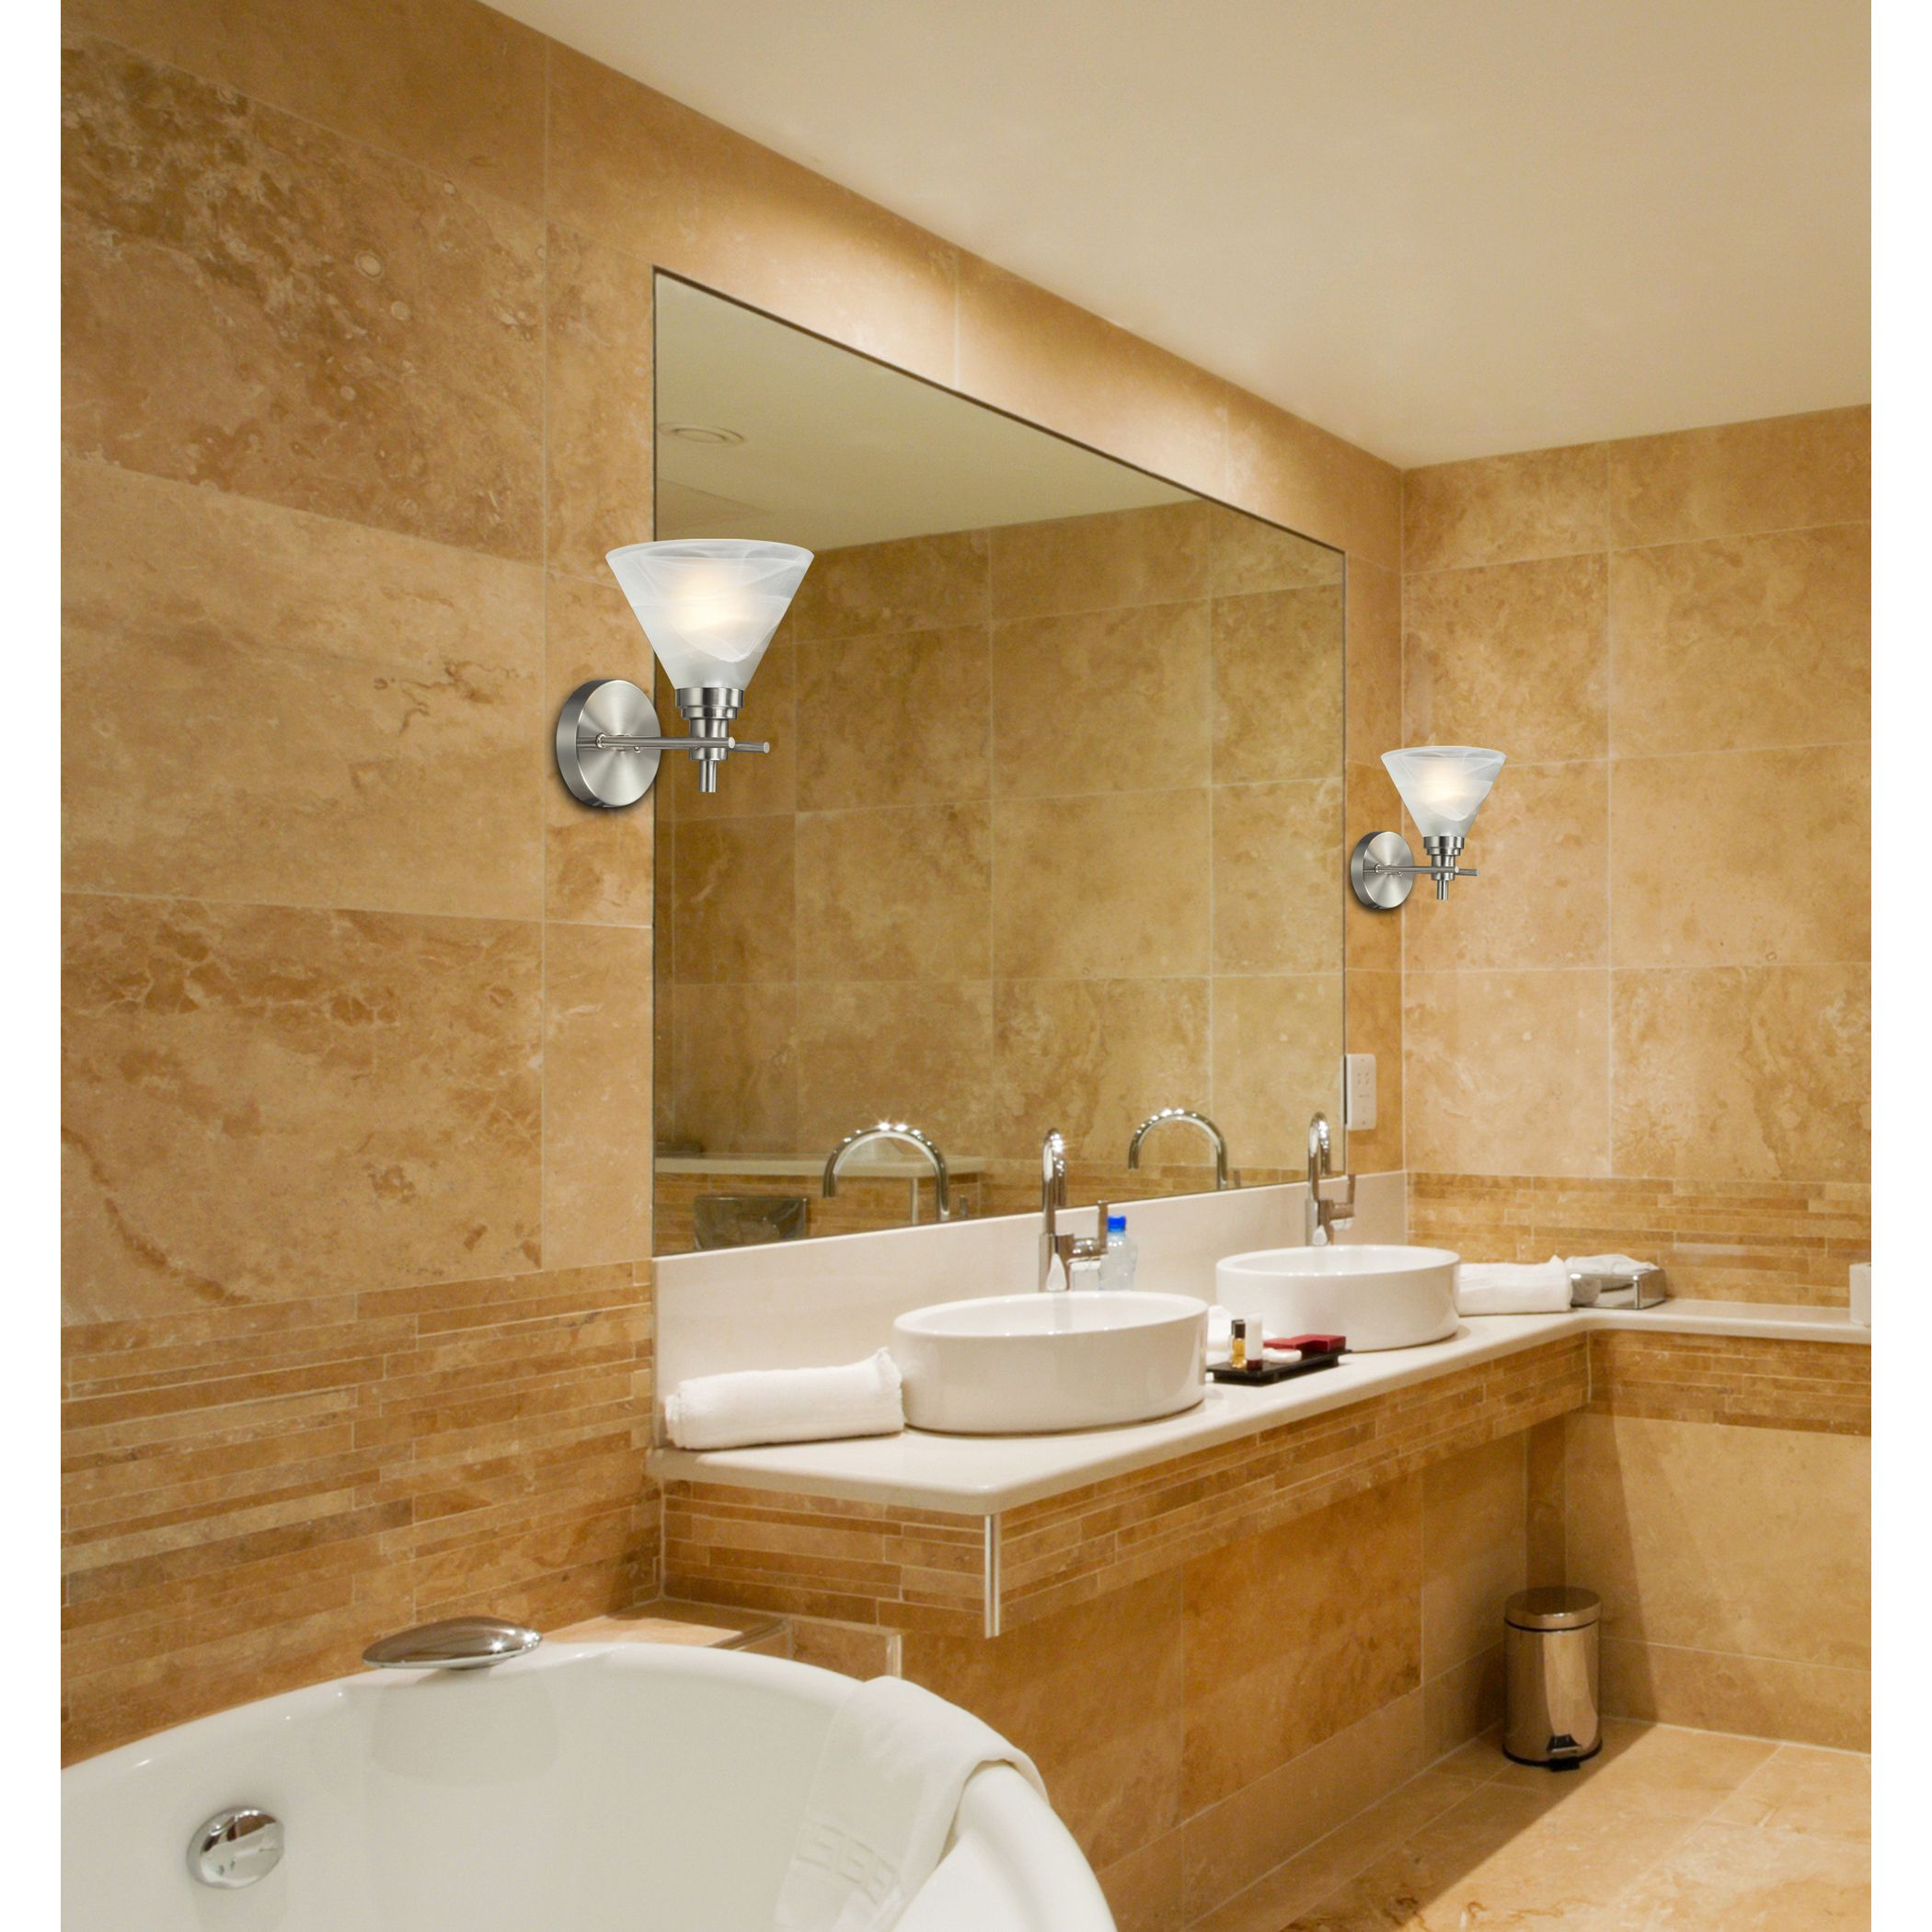 Pemberton 1-Light Bath in Brushed Nickel | Elk Lighting | Pinterest ...